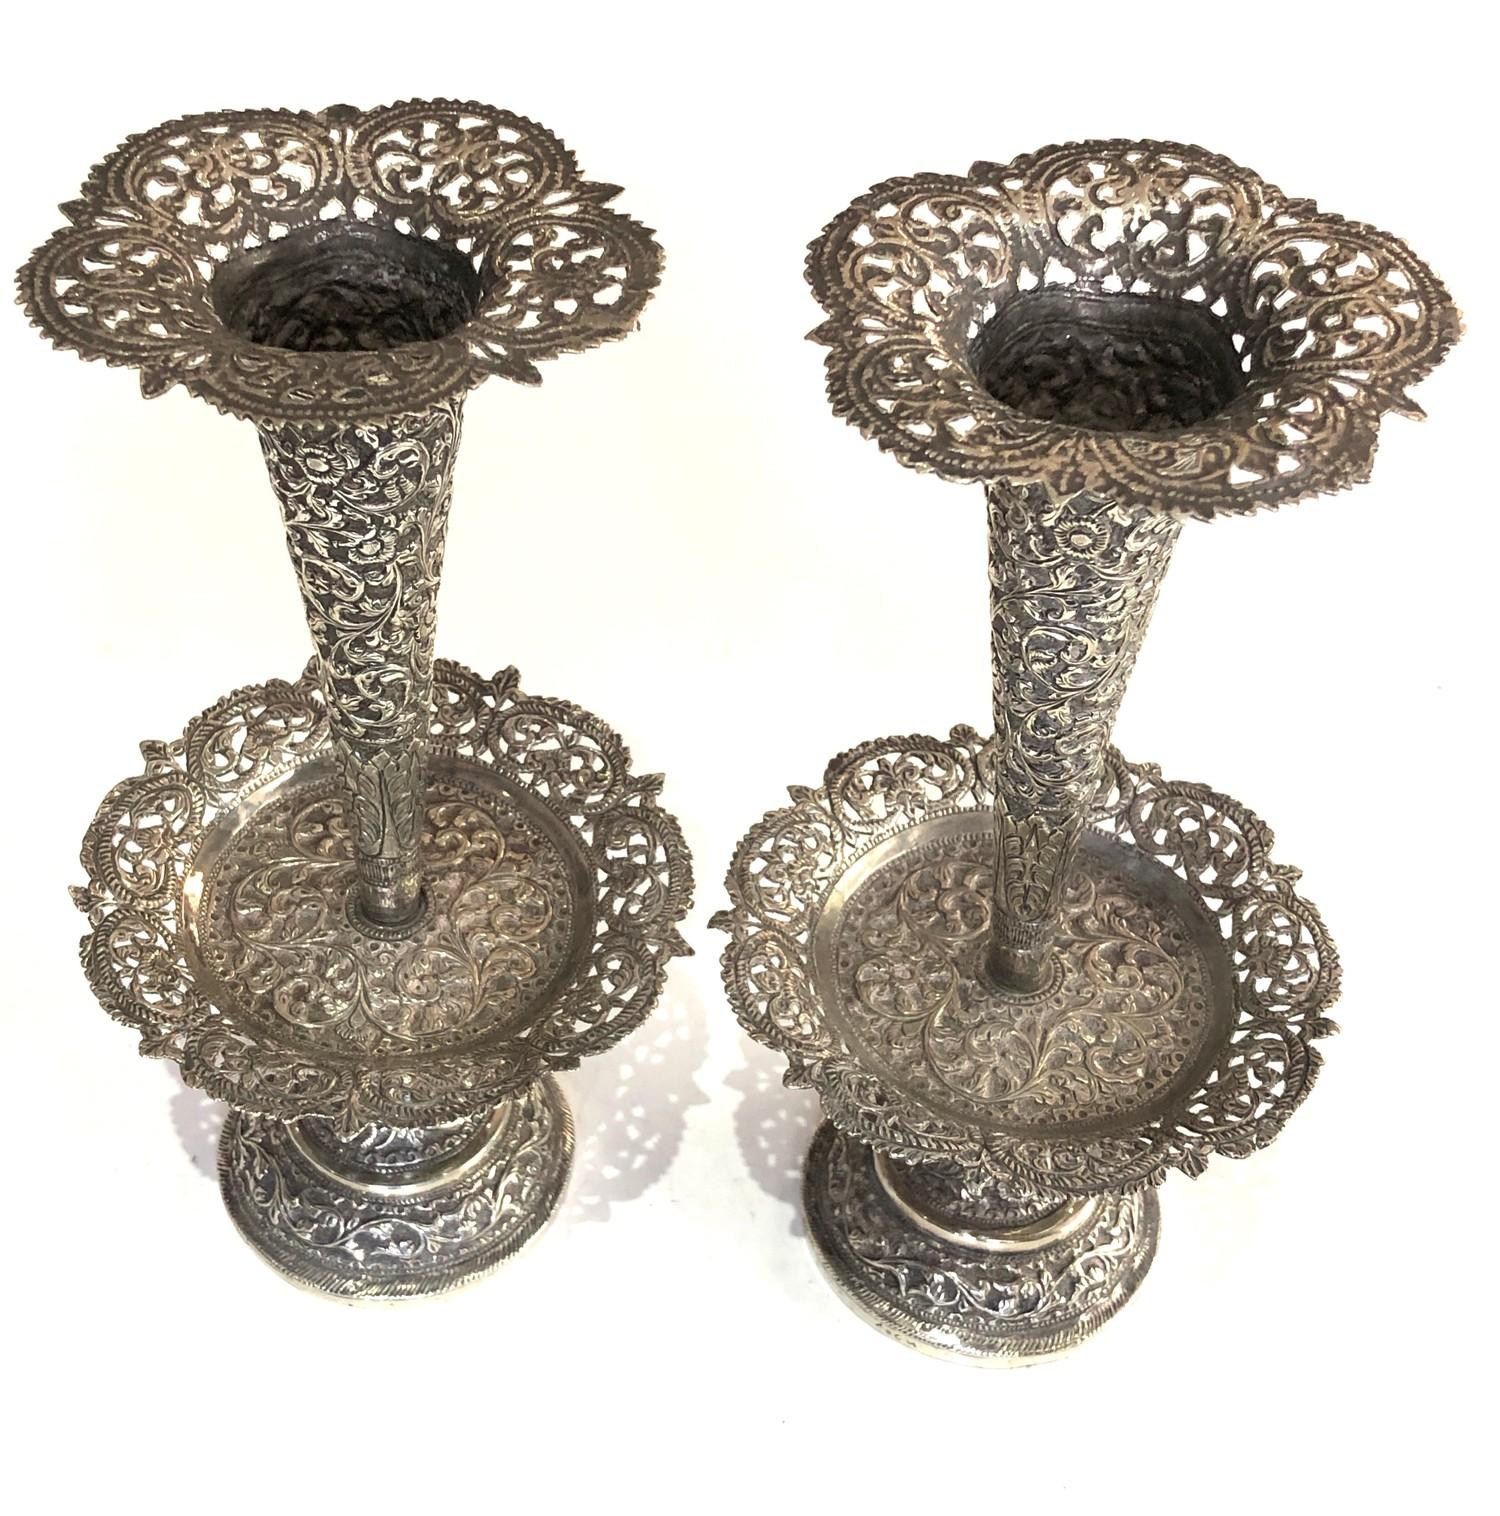 Fine Indian ornate Repousse floral vases each measures approx height 23cm filled bases total - Image 2 of 6